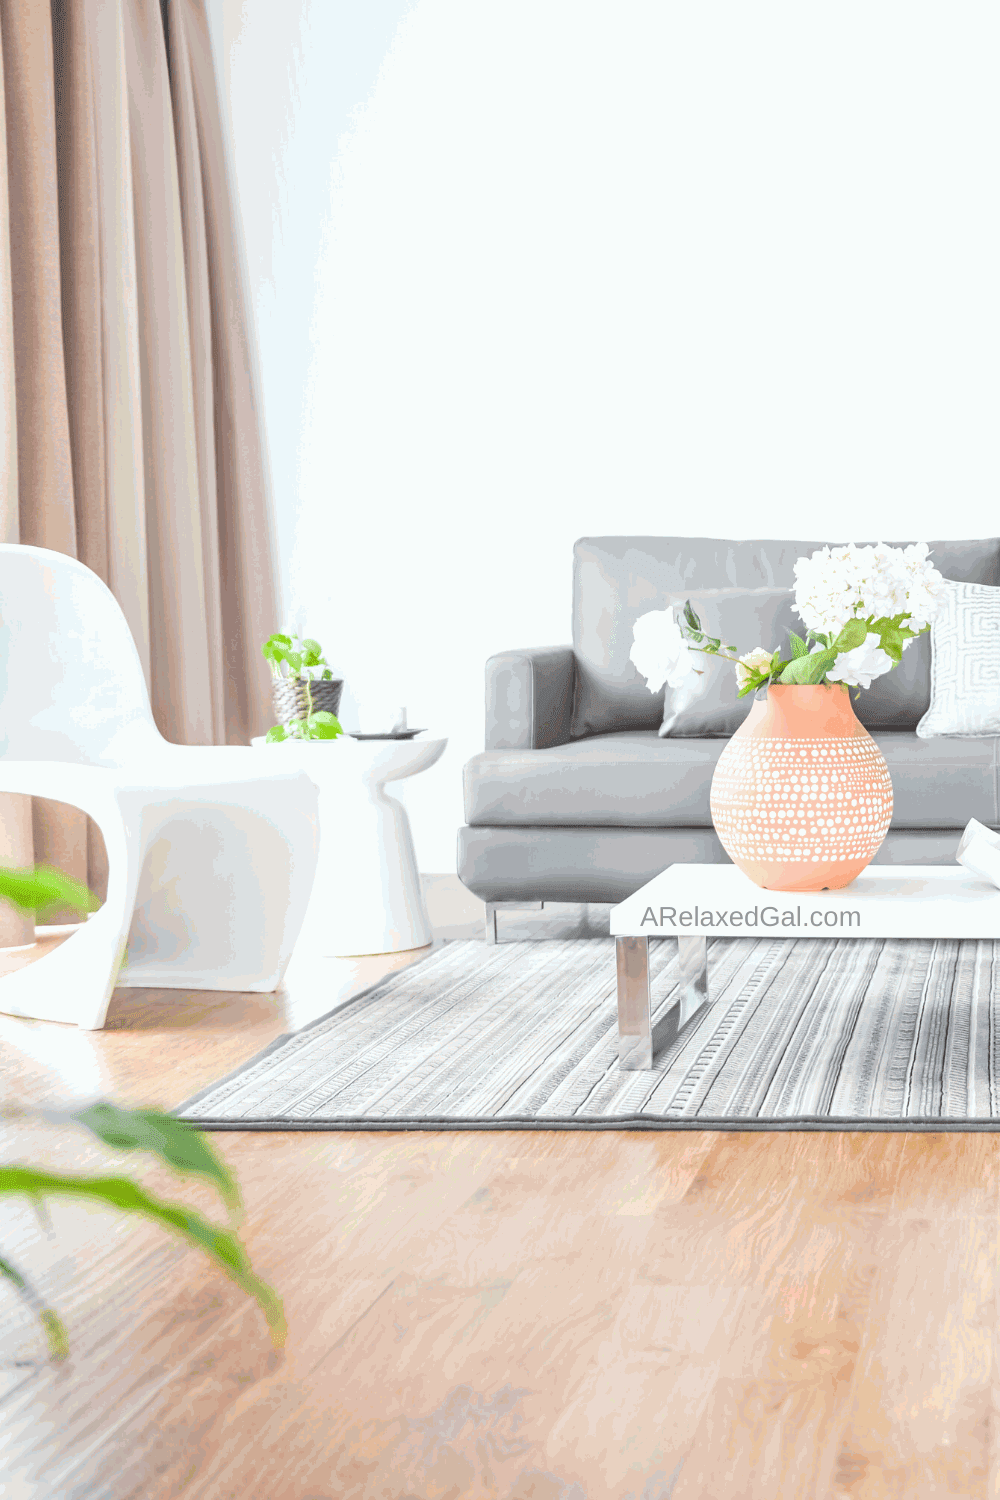 Easy Ways To Give Your Home A Refresh This Spring | A Relaxed Gal